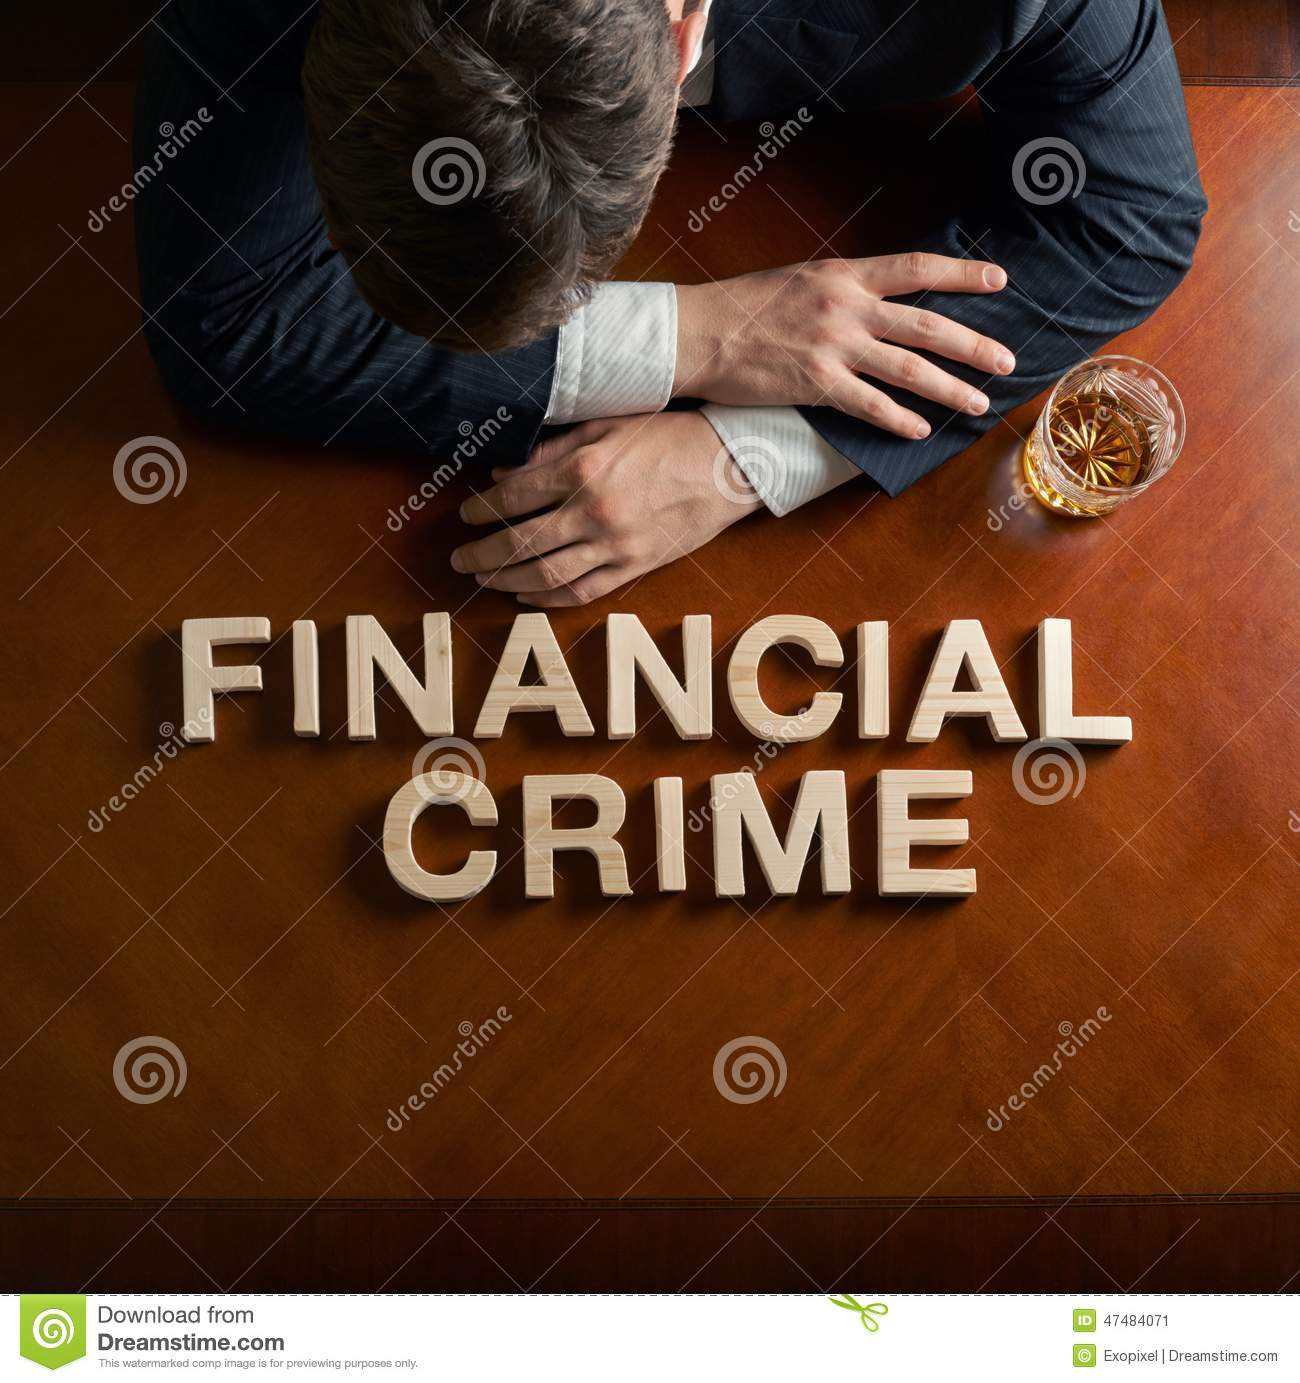 financial crime Financial crimes and exploitation can involve the illegal or improper use of a senior citizen's funds, property or assets, as well as fraud or identity theft perpetrated against older adults tthirty-nine states and the district of columbia states addressed financial exploitation of the elderly and.